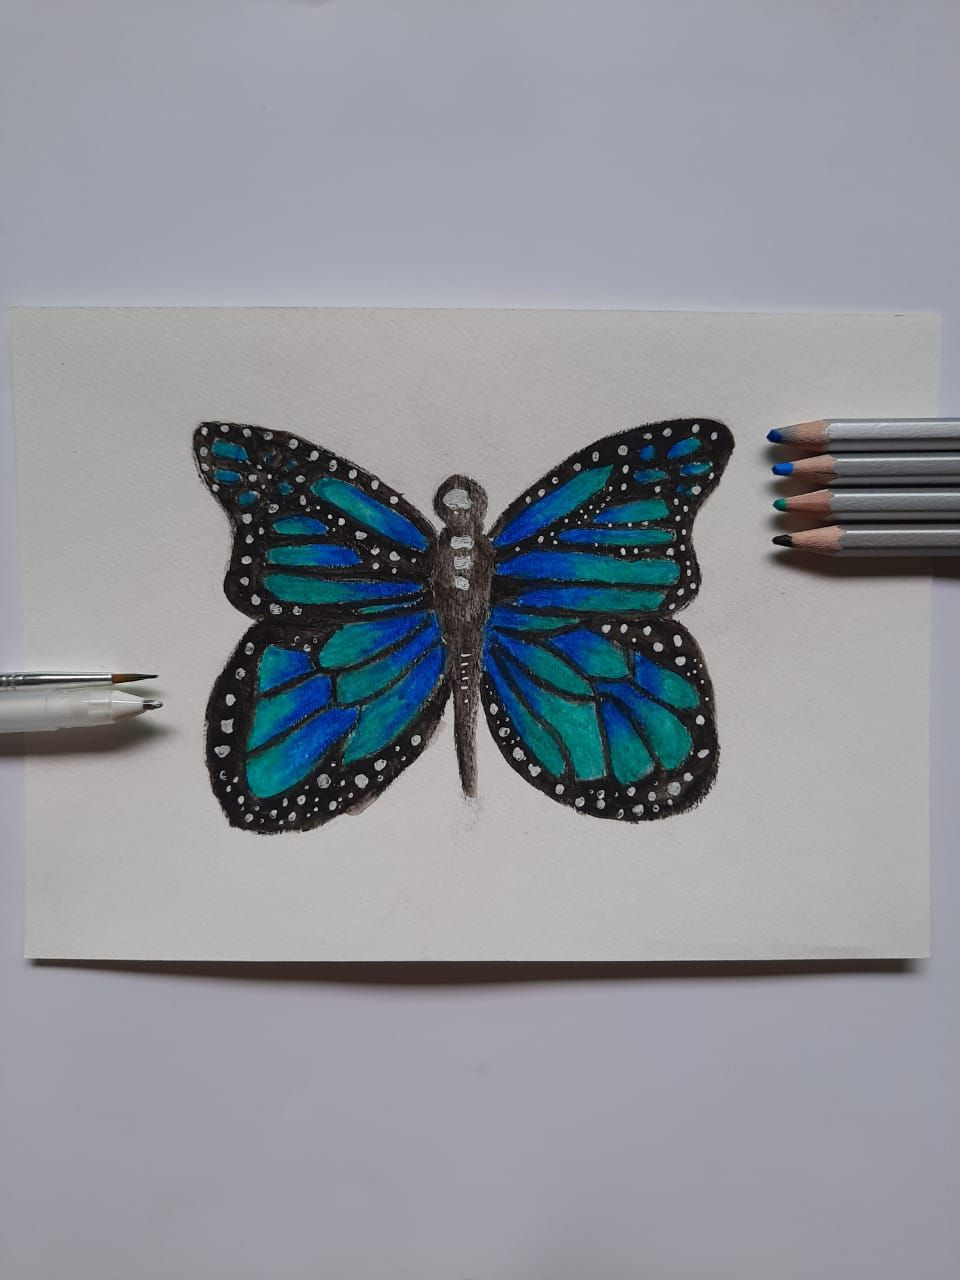 Butterfly - image 3 - student project